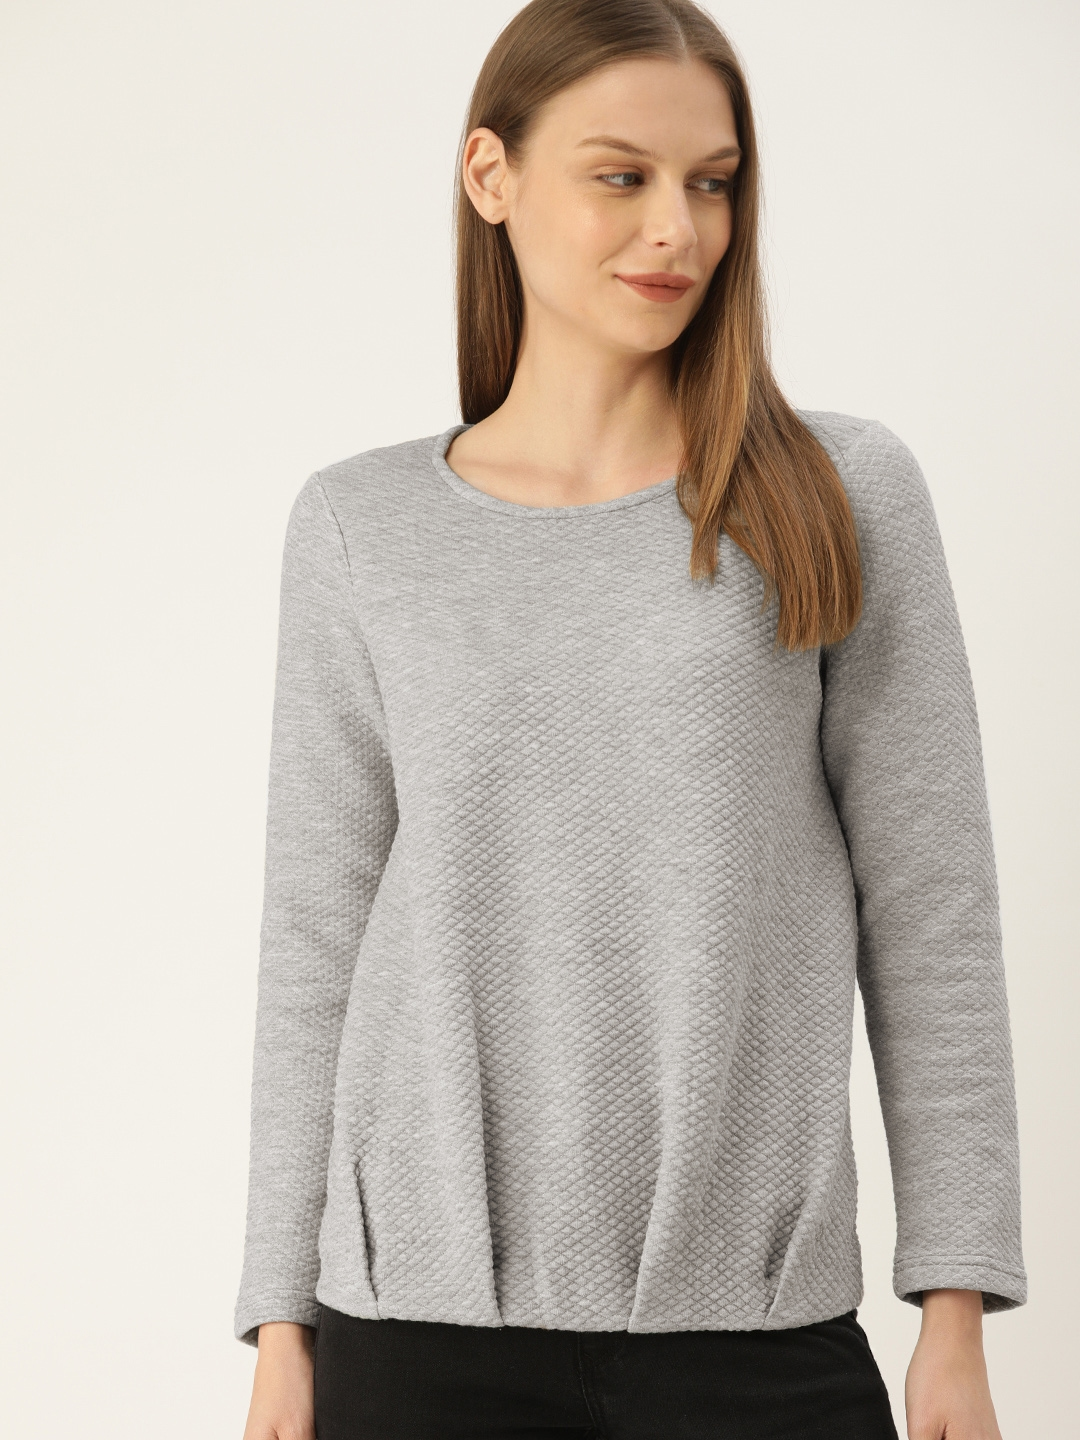 Allen Solly Woman Women Grey Self Design Sweatshirt